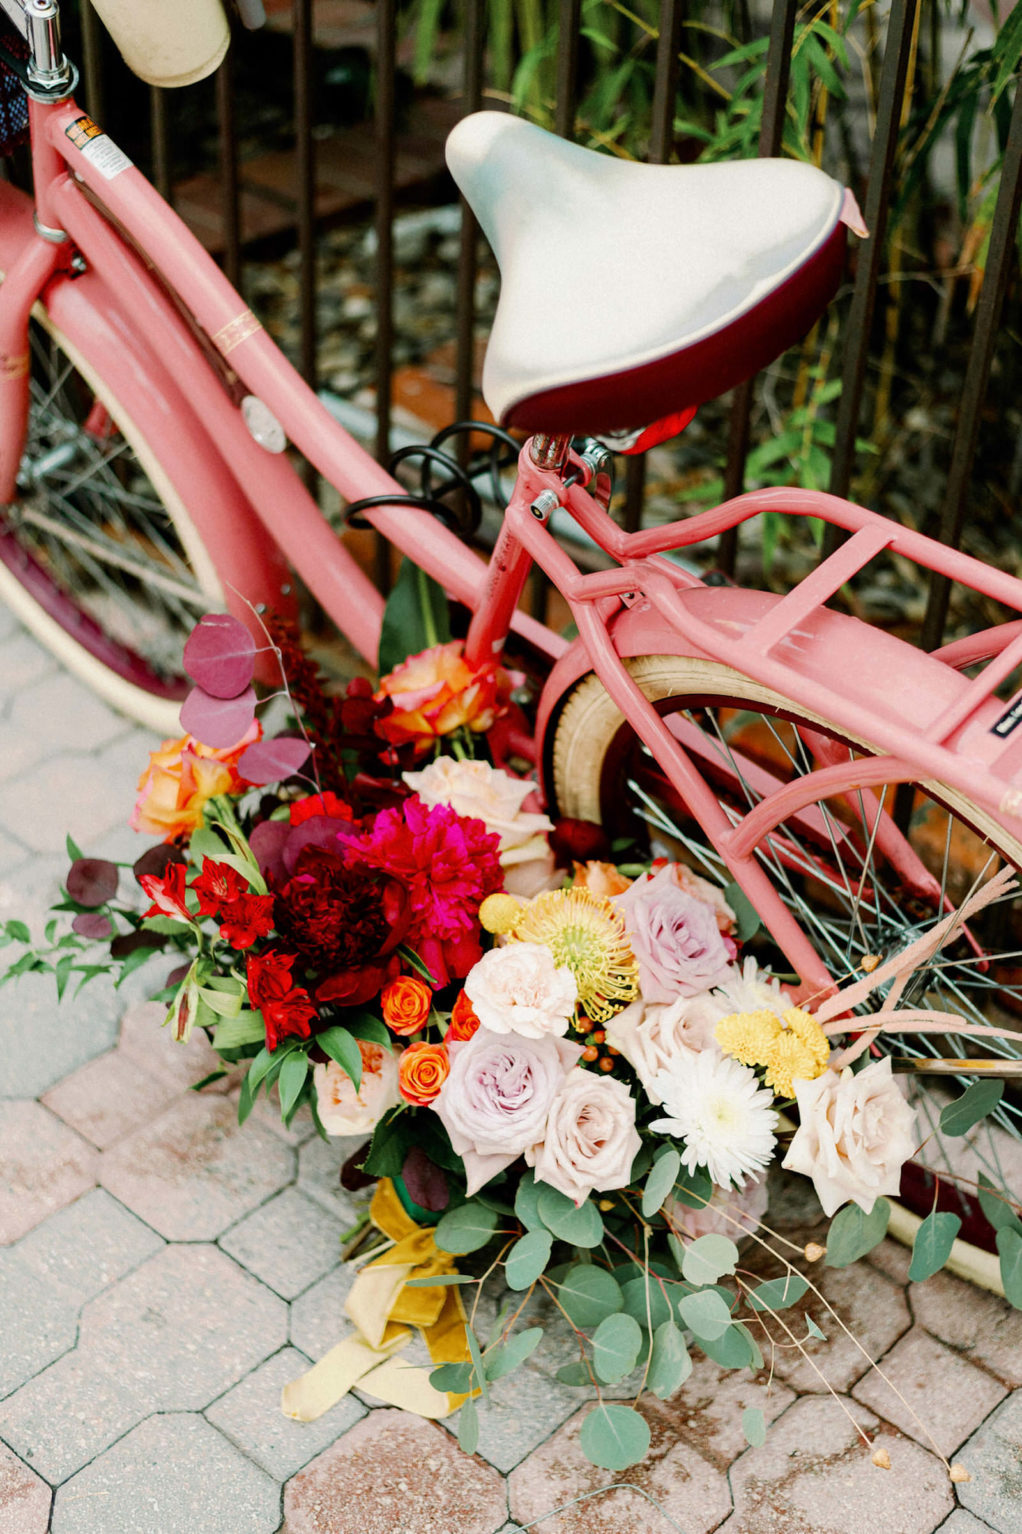 Colorful Pink Retro Bicycle with Floral Boutique, Lilac Roses, Yellow Pincushion Protea, Pink and Red Flowers, Red Eucalyptus, Green Eucalyptus   Tampa Bay Wedding Photographer Dewitt for Love